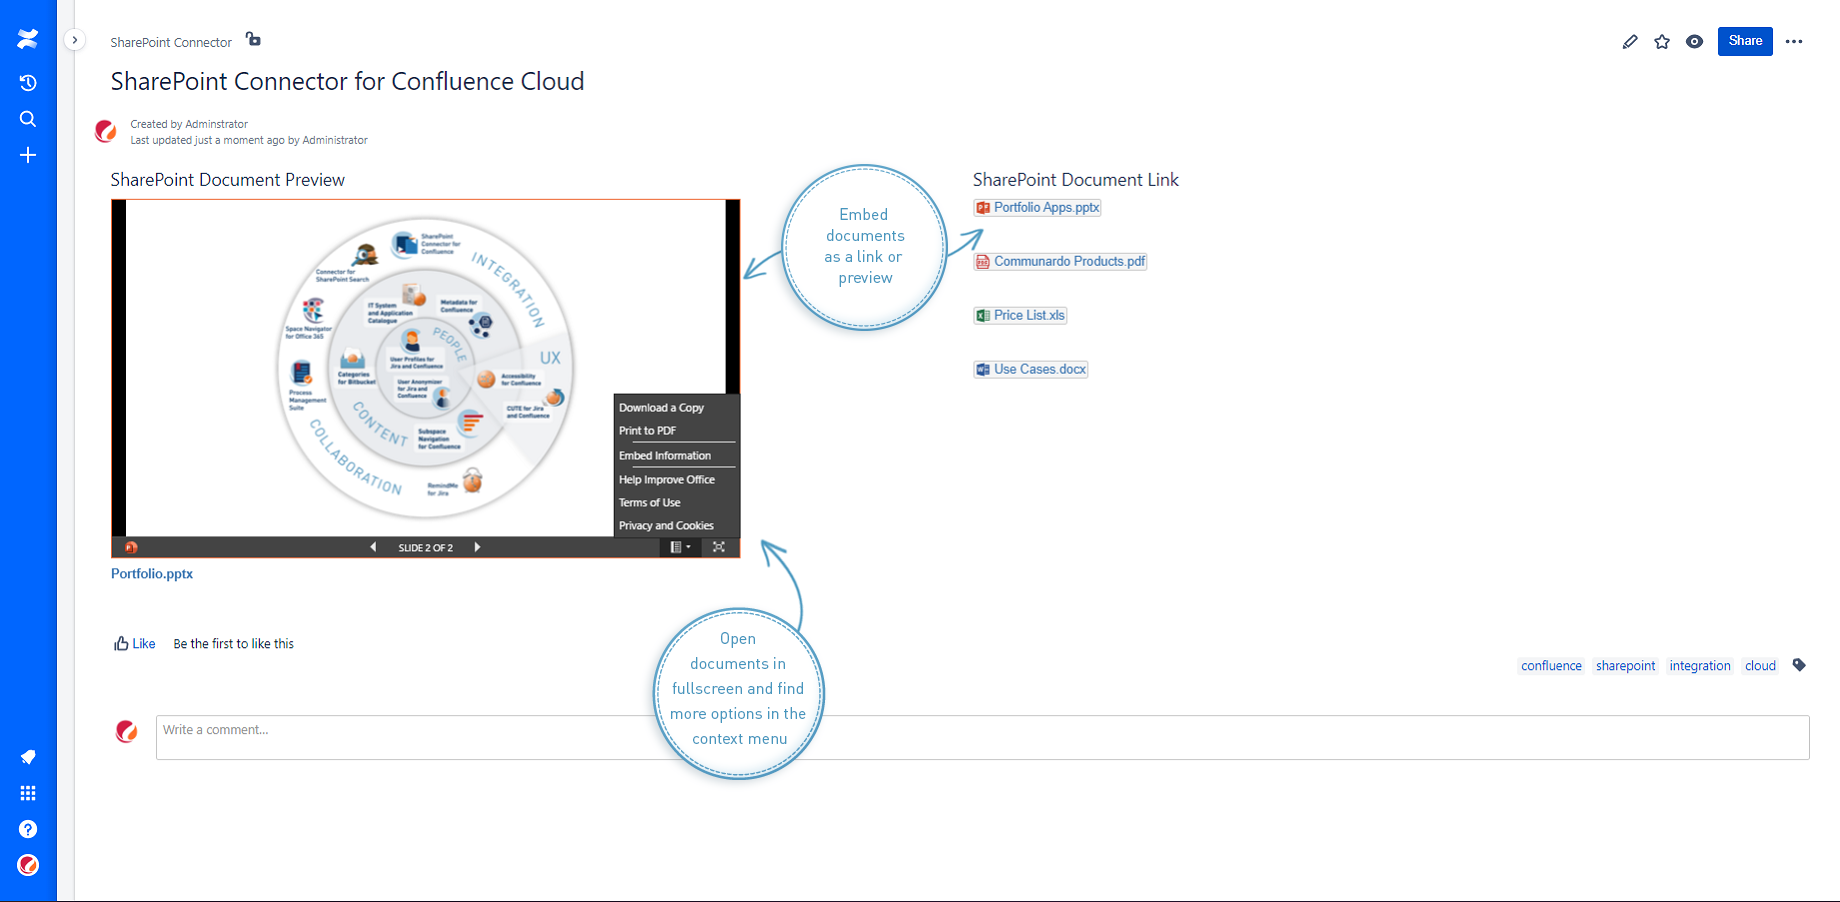 SharePoint Documents Displayed in Confluence Cloud